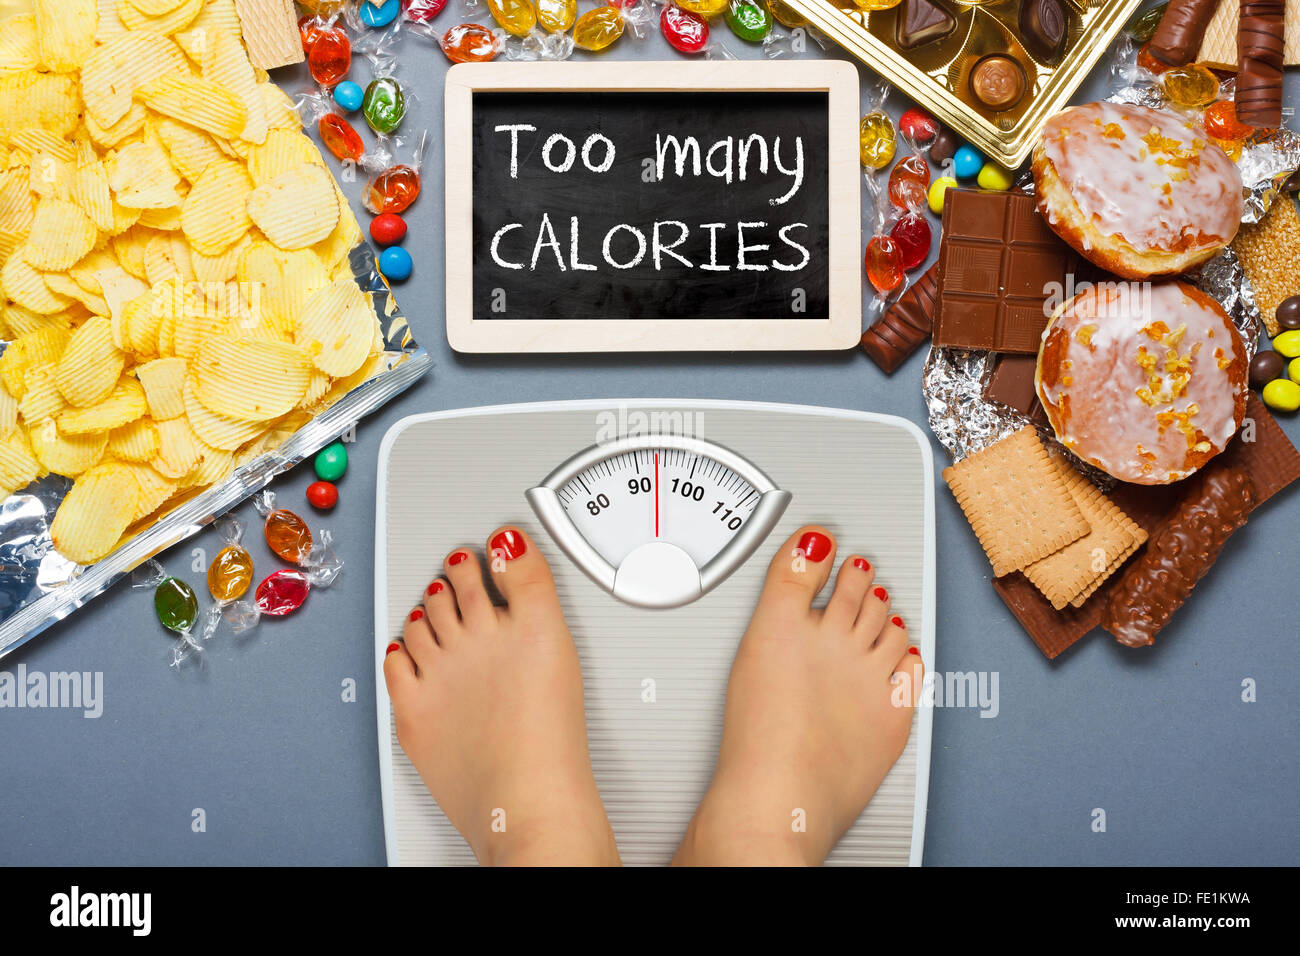 Unhealthy diet - overweight. Feet on bathroom scale - Stock Image